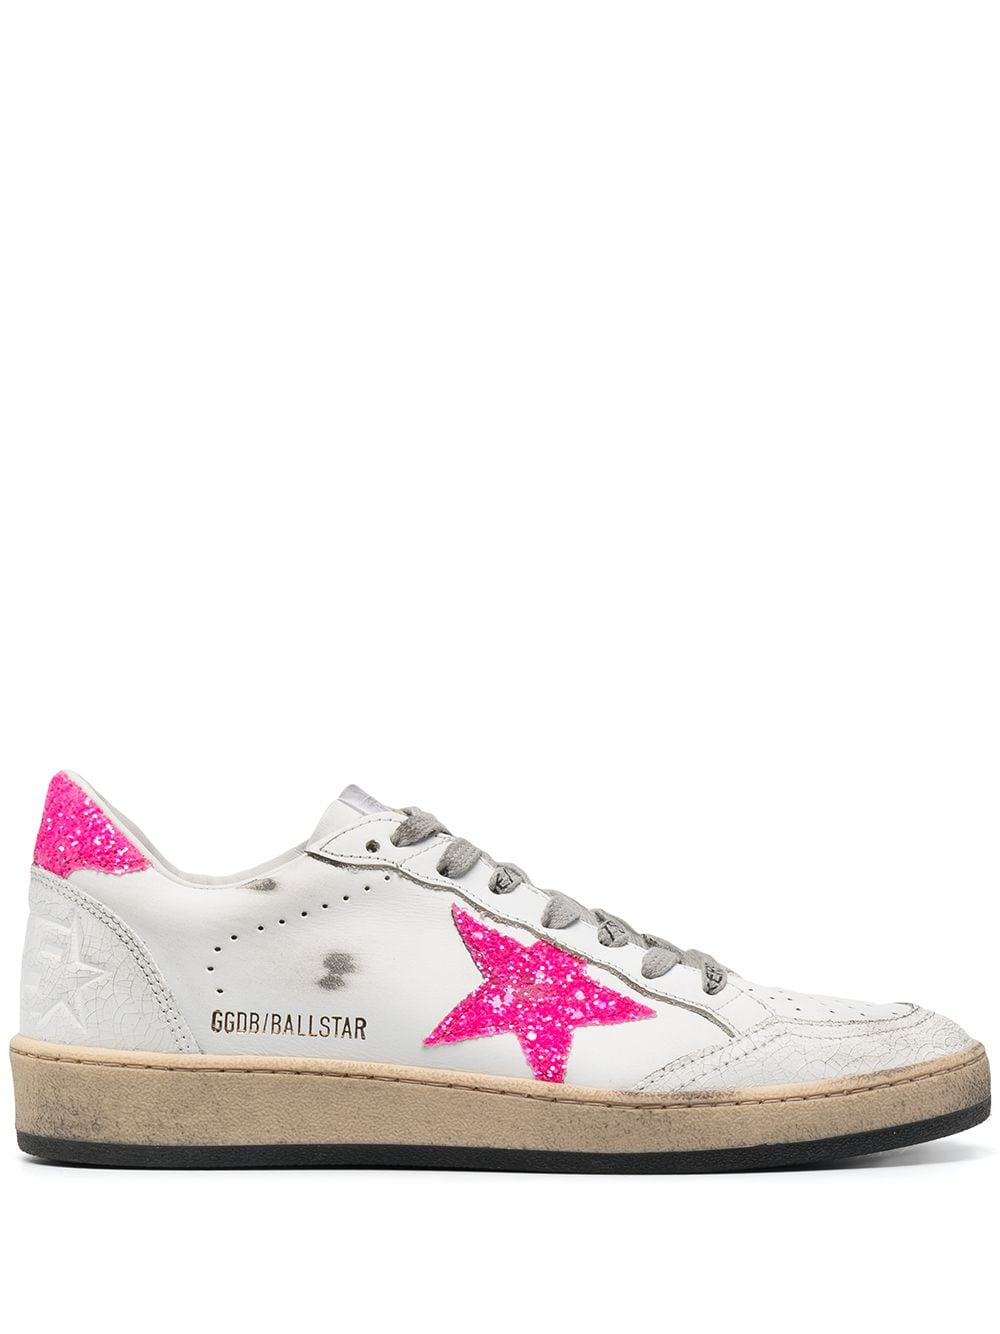 Picture of Golden Goose Deluxe Brand | Ballstar Leather Sneakers